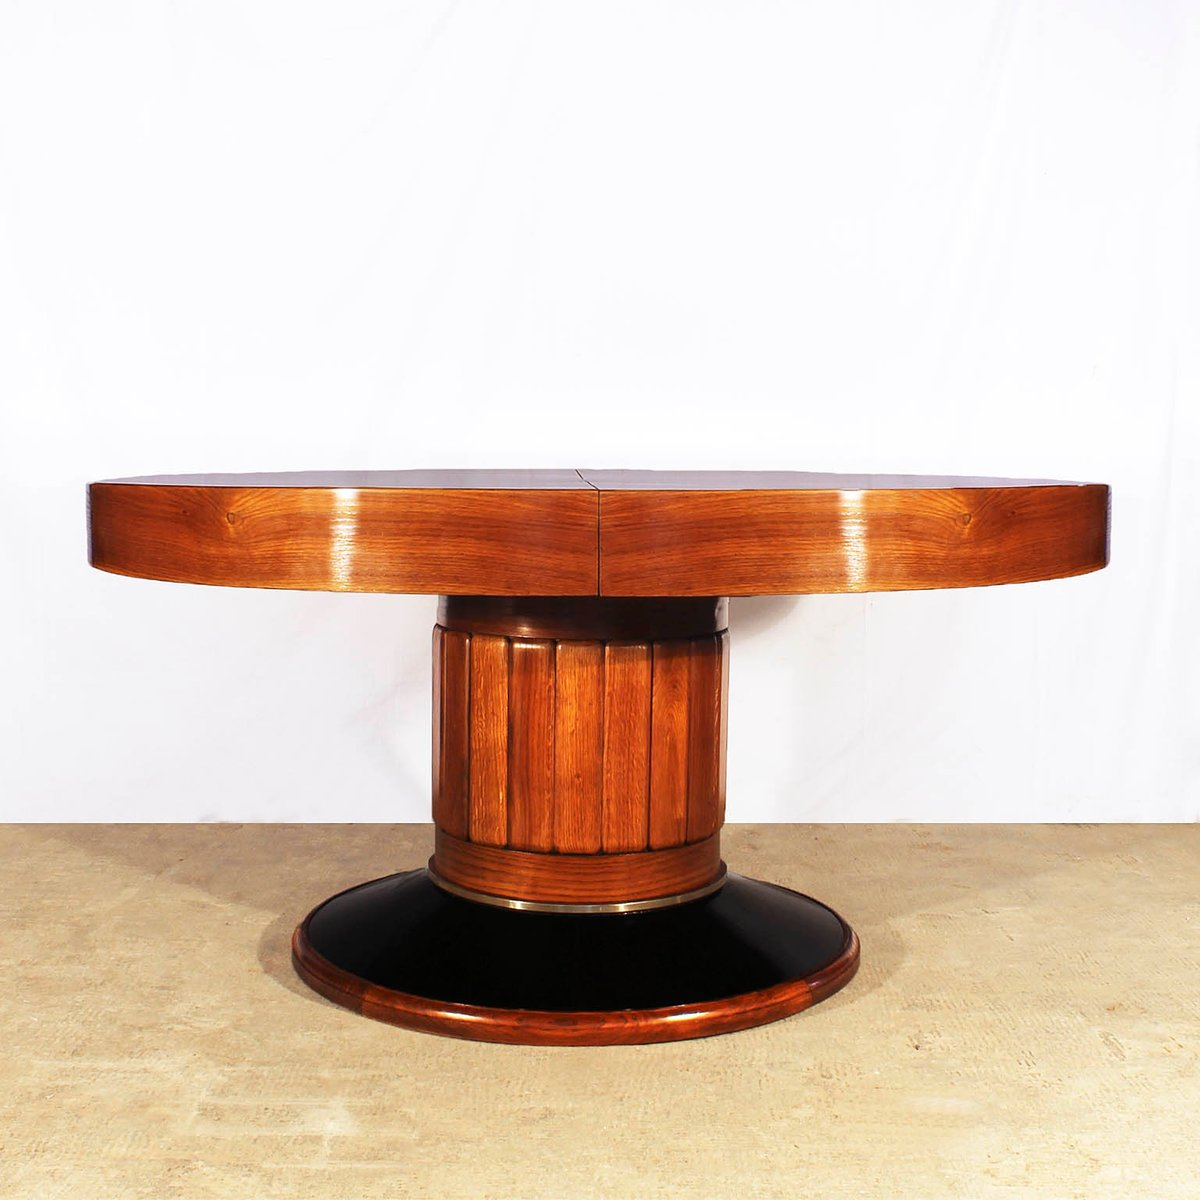 large round spanish art deco table 1930s for sale at pamono. Black Bedroom Furniture Sets. Home Design Ideas